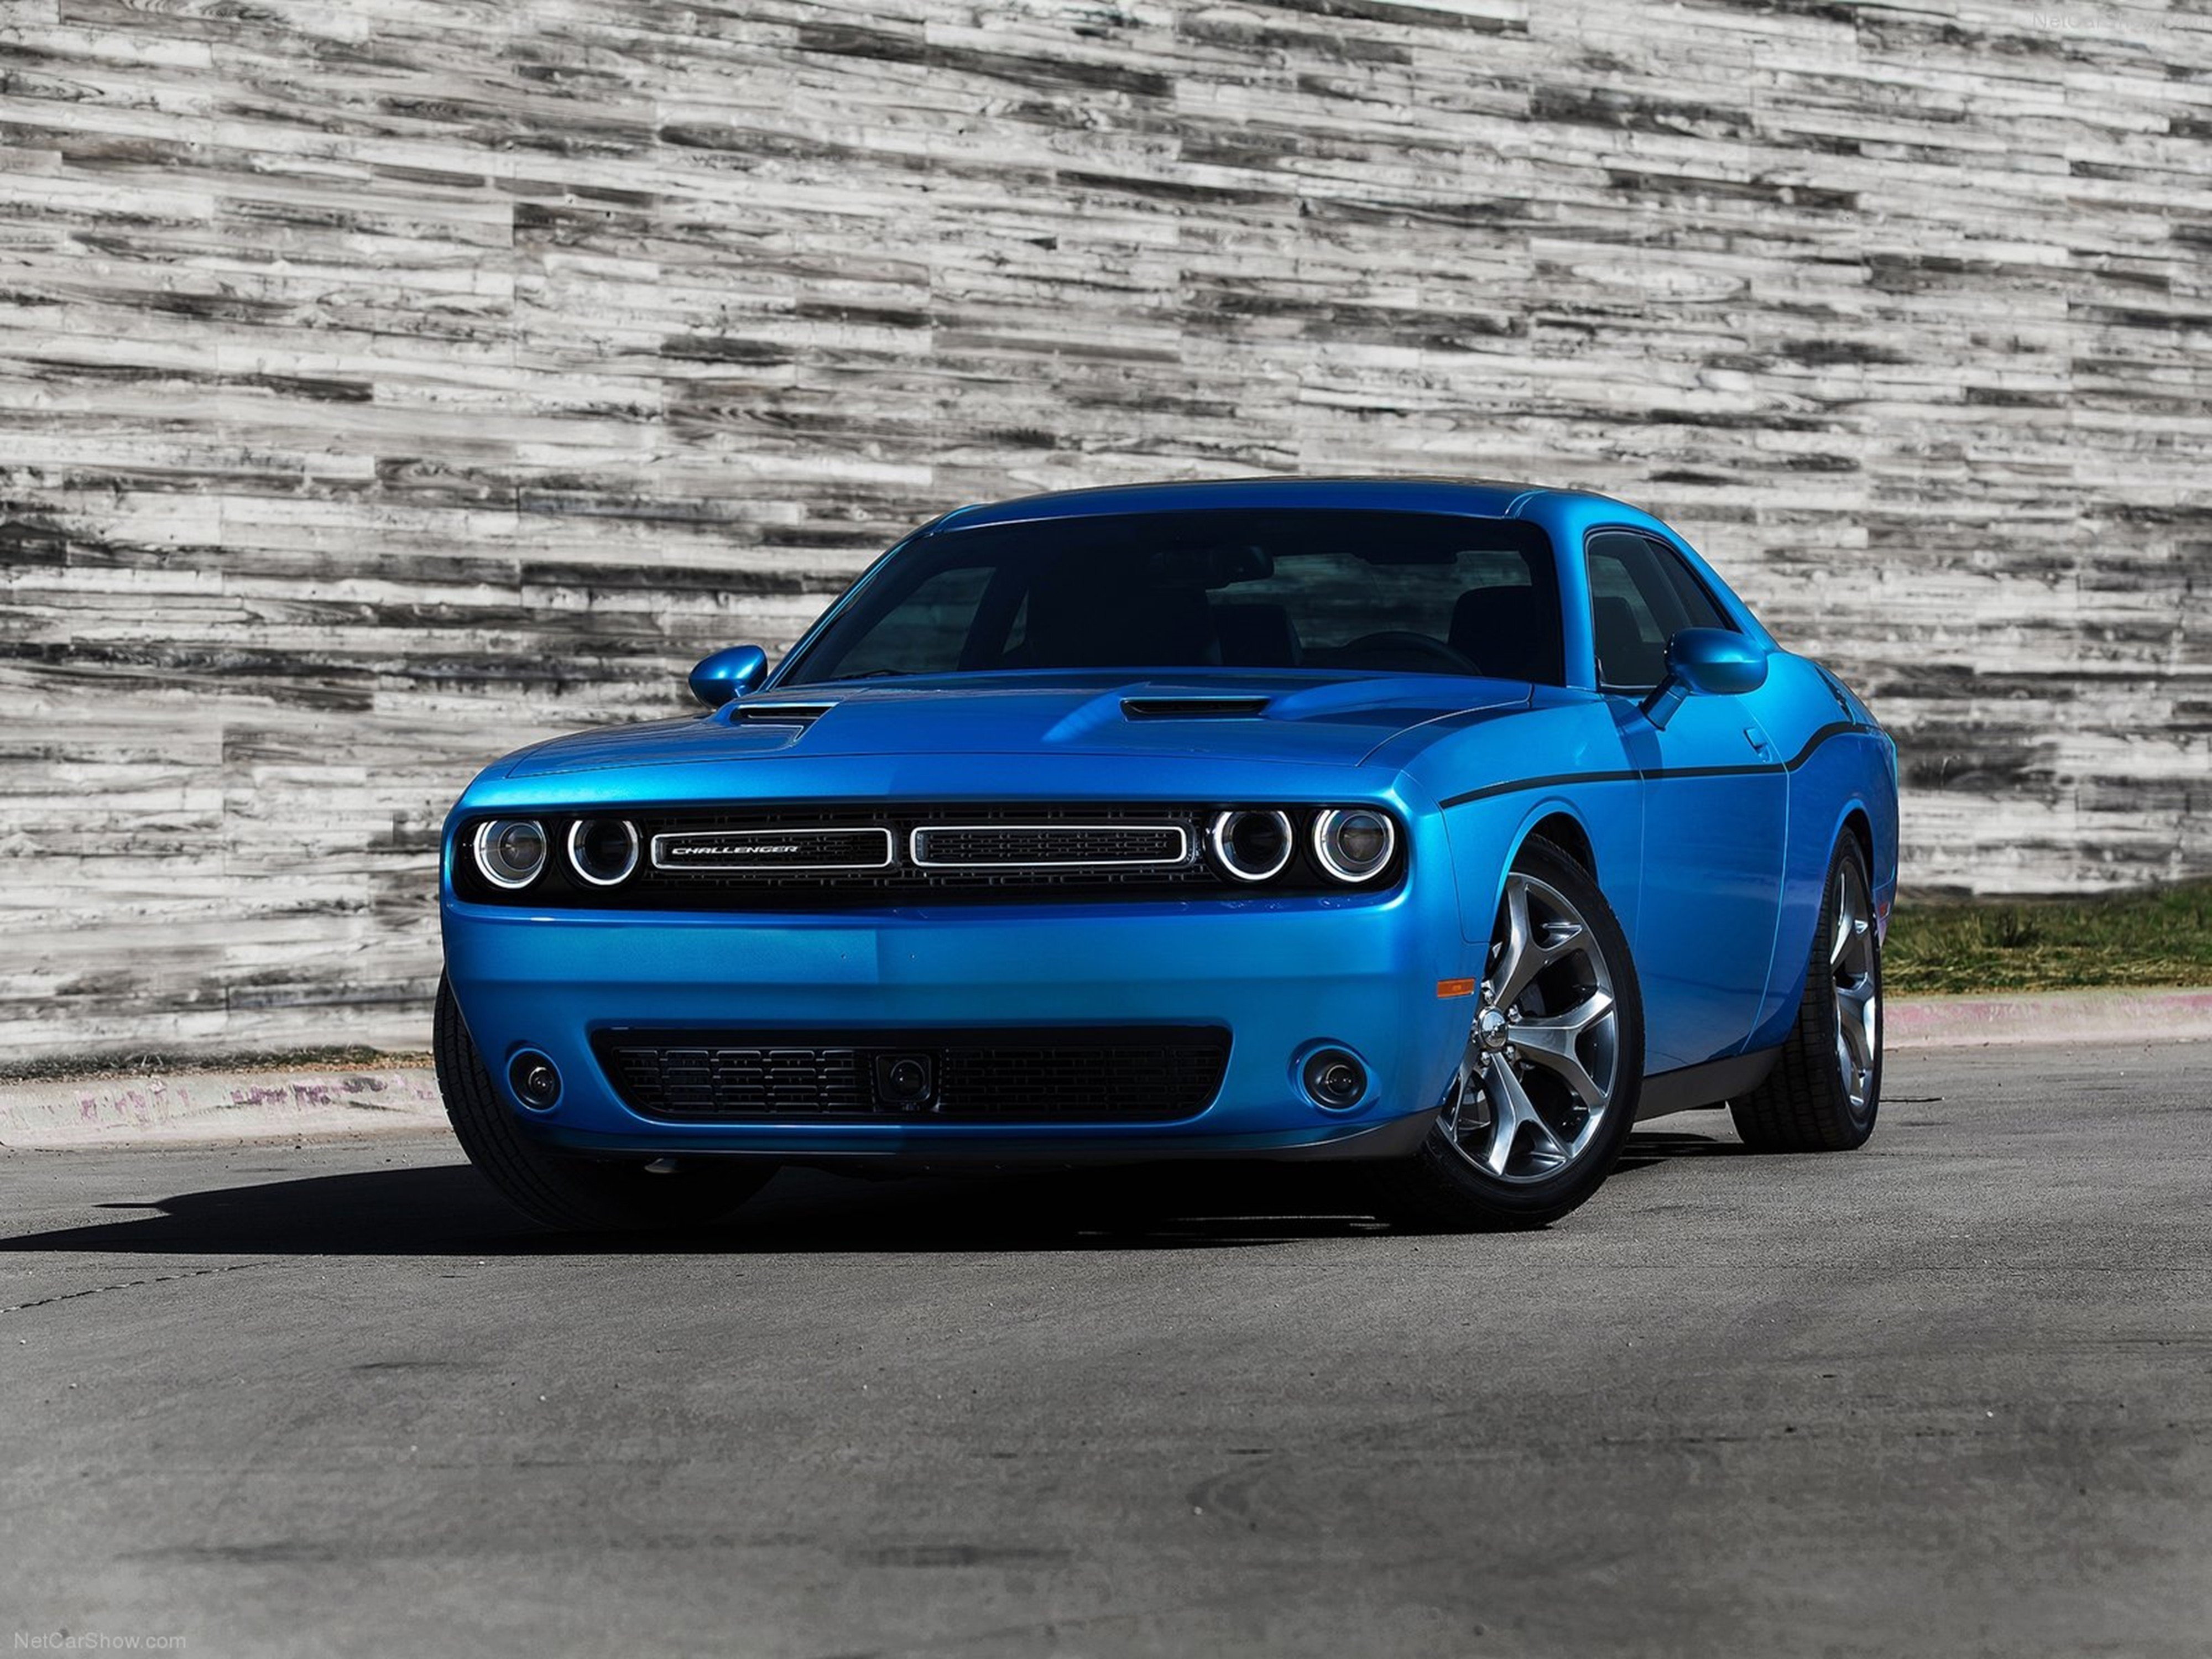 New Dodge Challenger 2015 Muscle Car Wallpaper Blue 4000X3000 On This Month